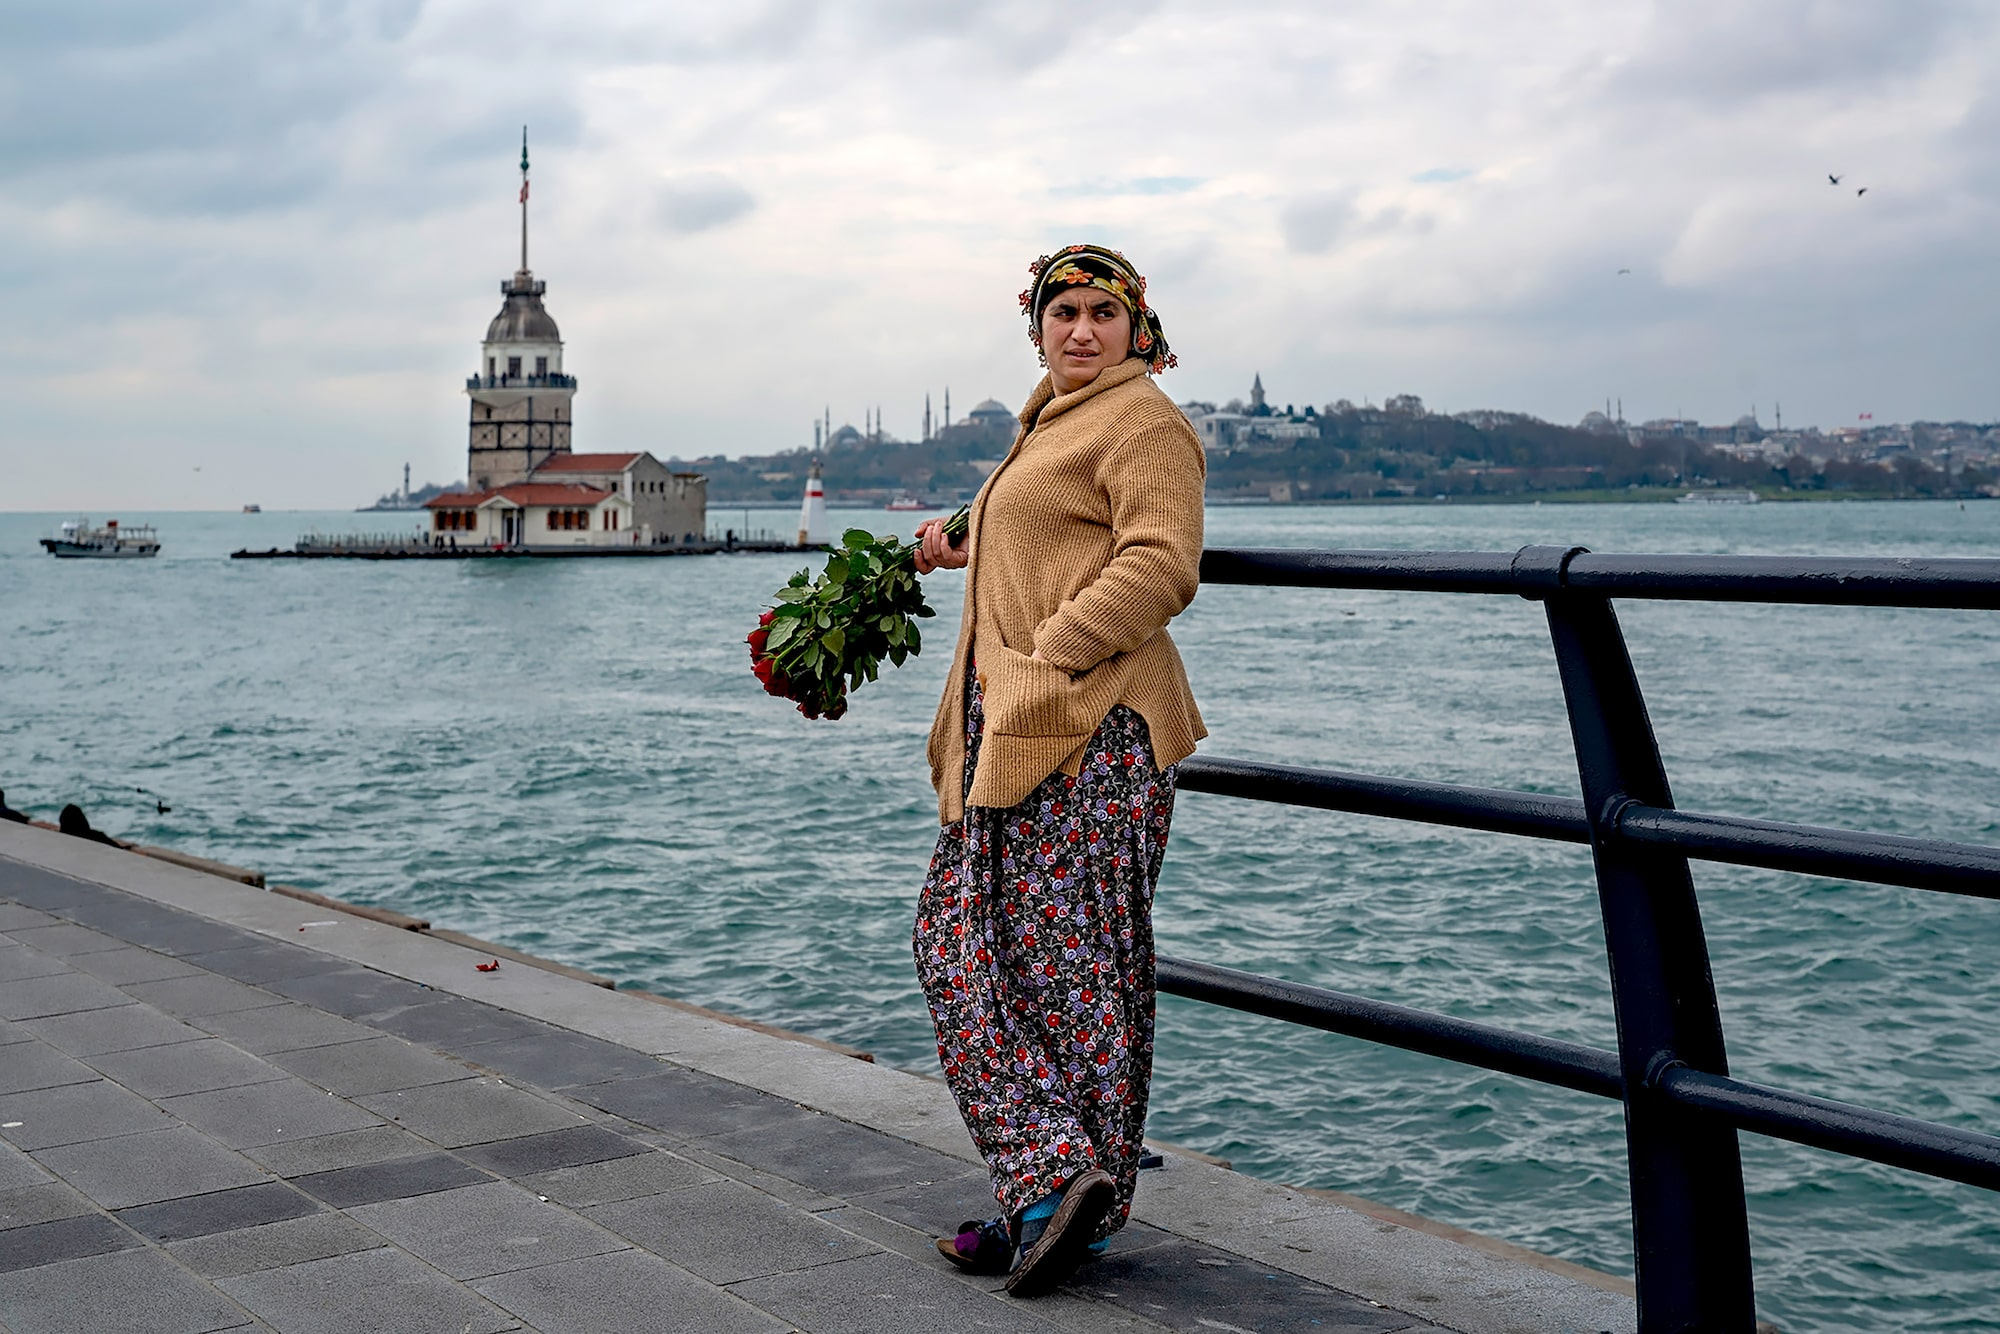 murat pulat sony alpha 7RIII lady standing by the docks in istanbul holding a bunch of roses